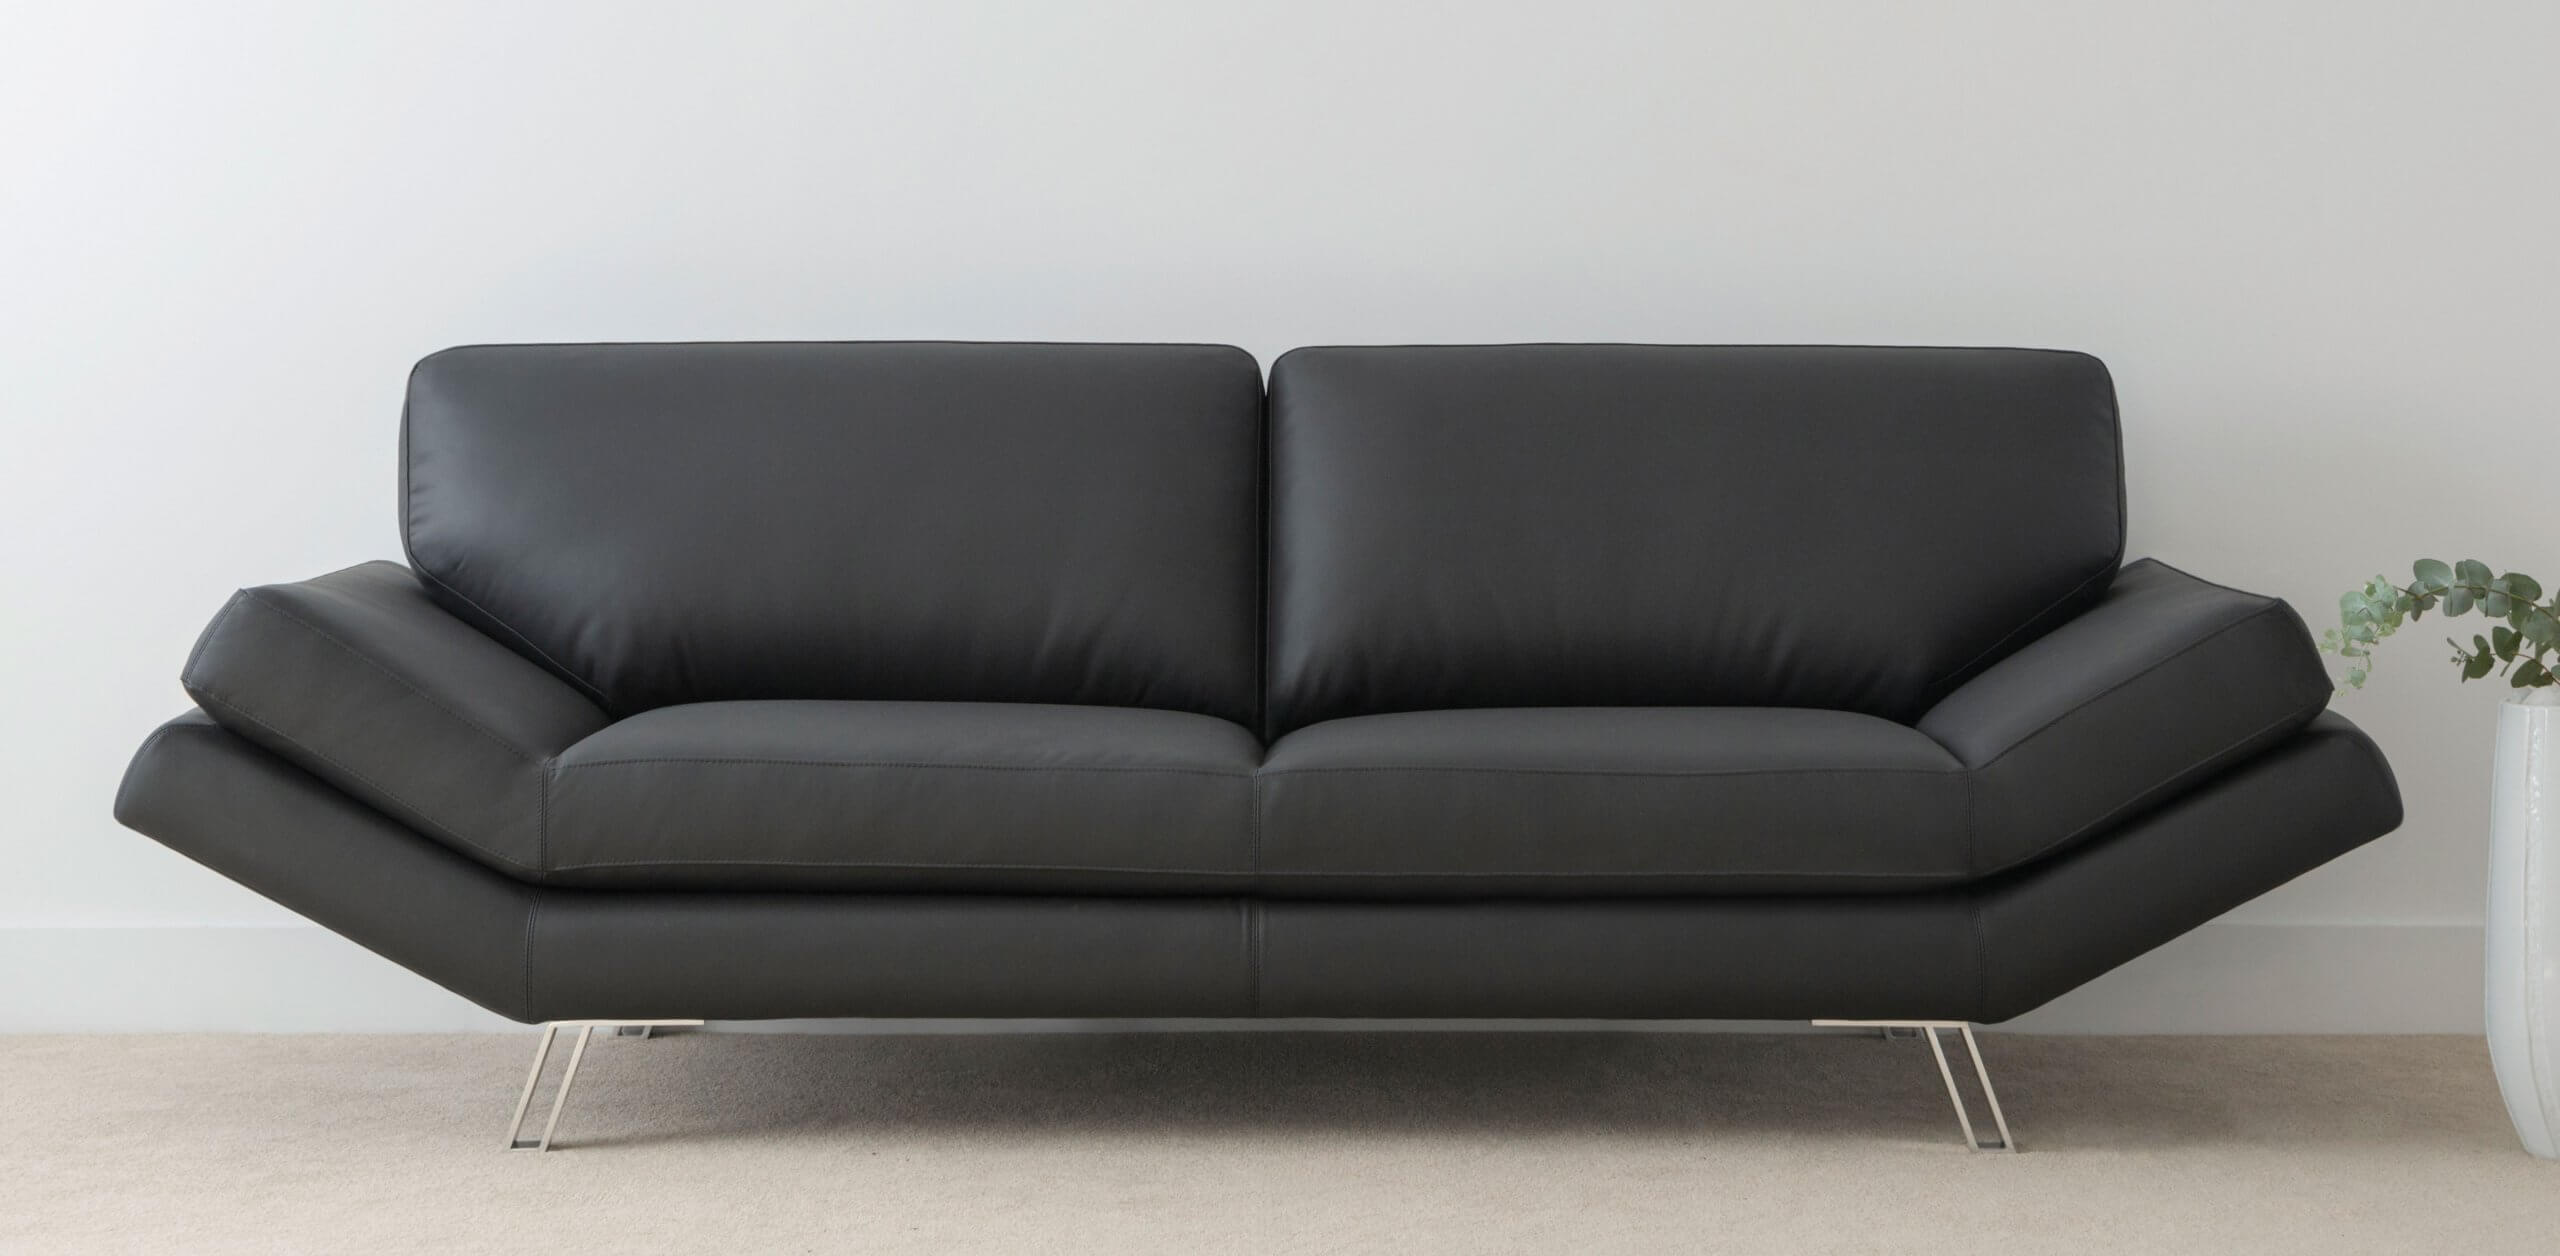 modern black leather lounge with chrome leg feature and angled arms